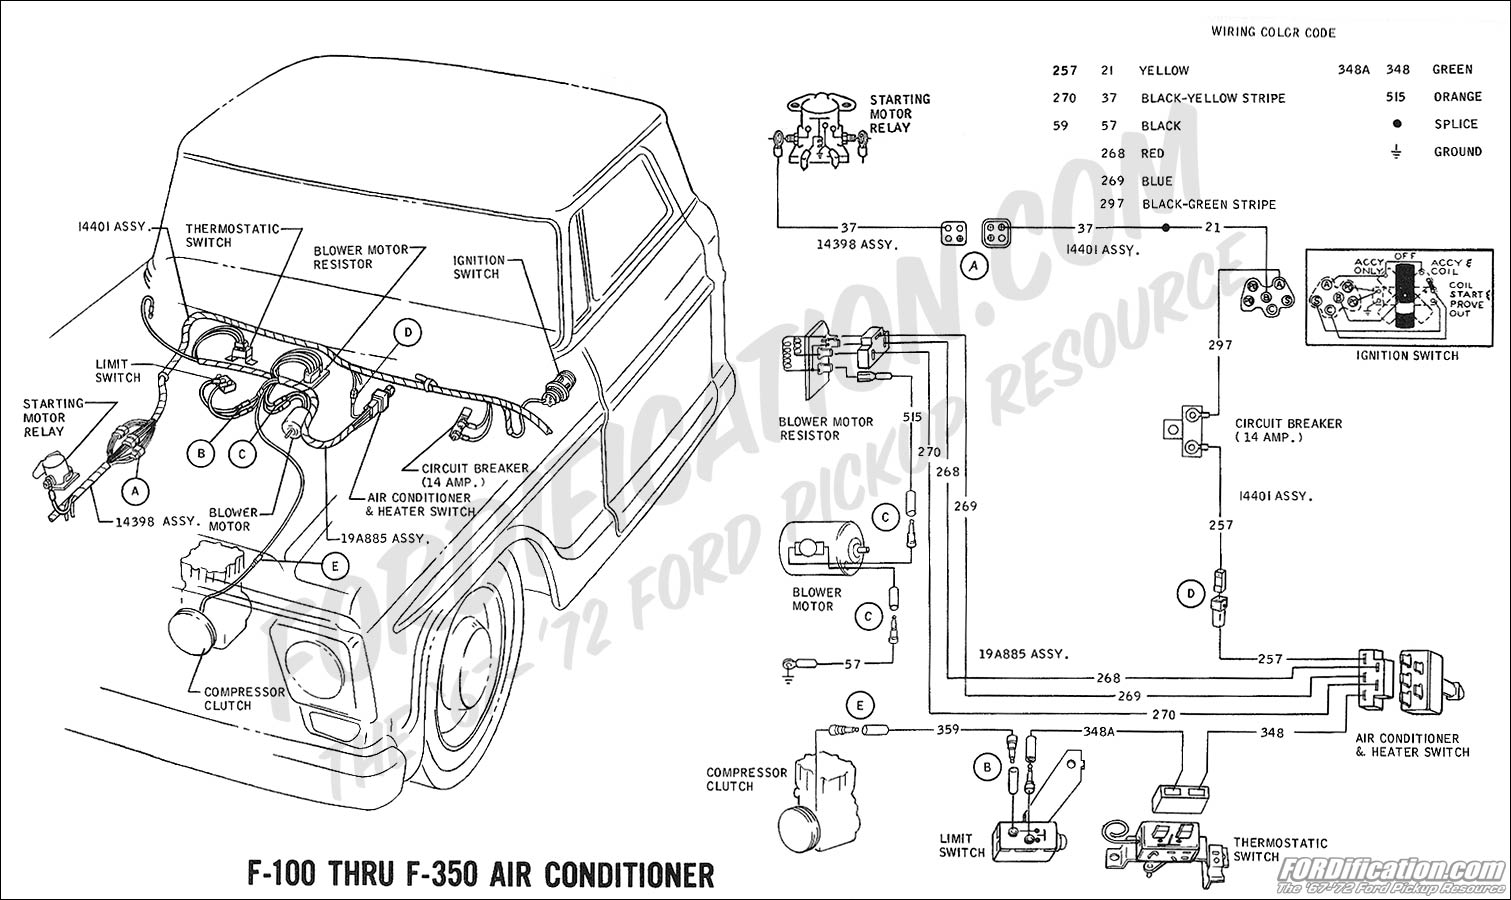 hight resolution of ford air conditioning wiring diagram data diagram schematic wiring diagram air conditioning cycle diagram ford f 250 air